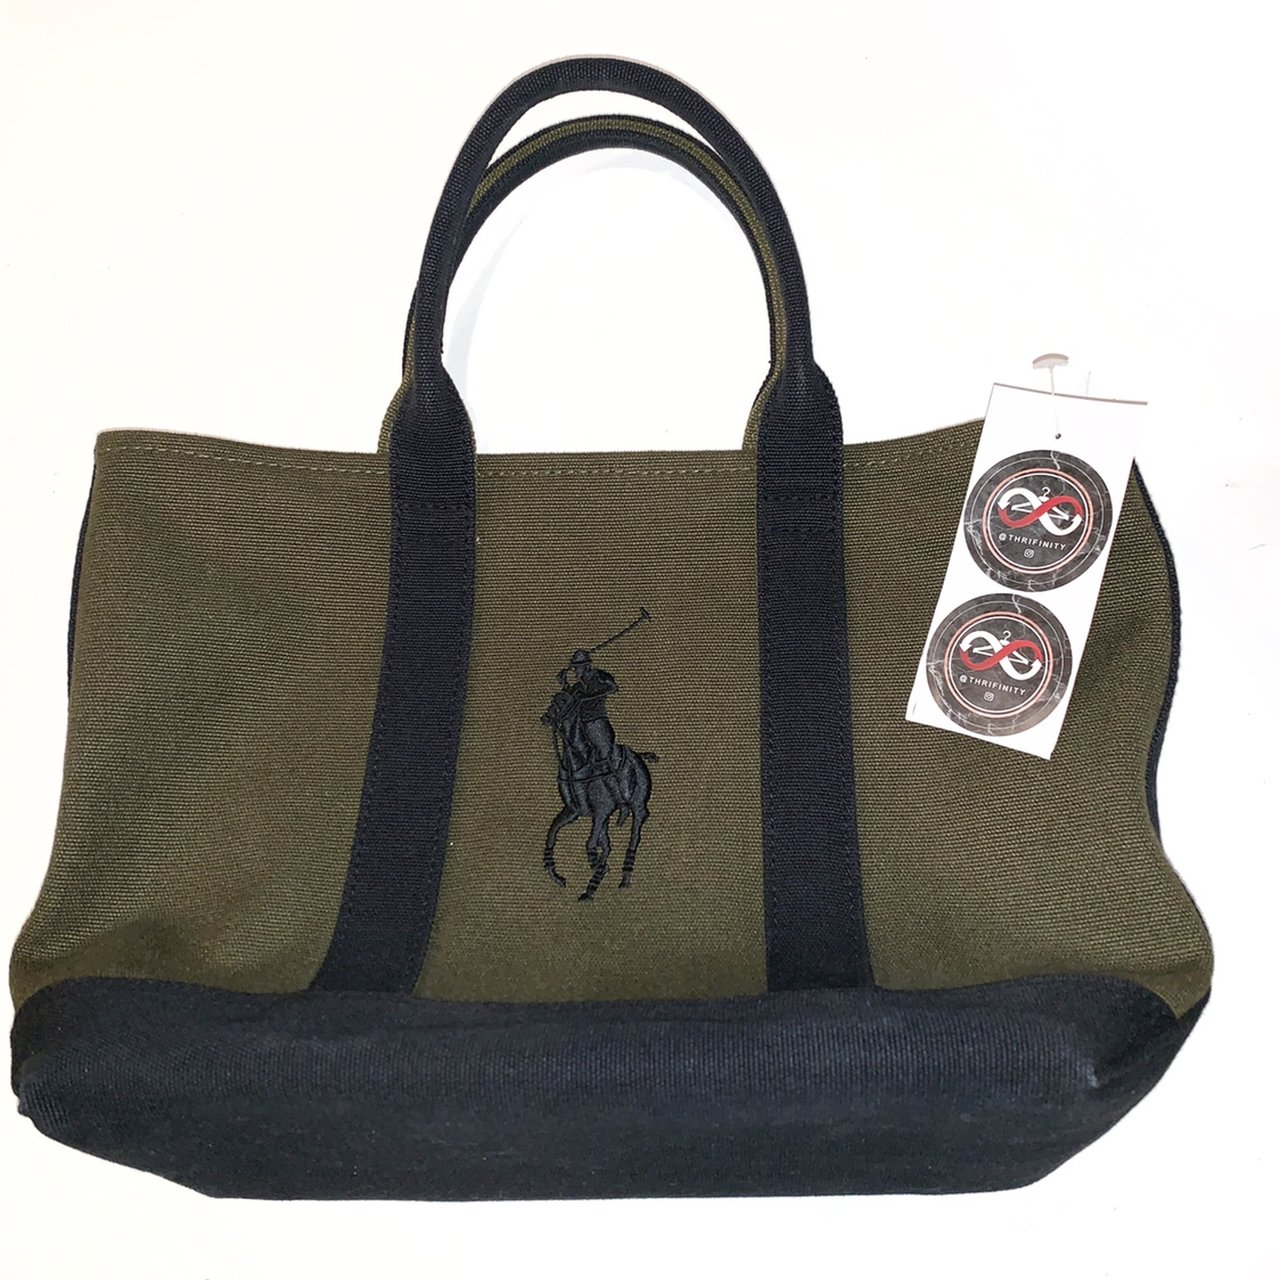 43e5c06ab433 Polo Ralph Lauren Small Canvas Bag. Dark olive green and - Depop